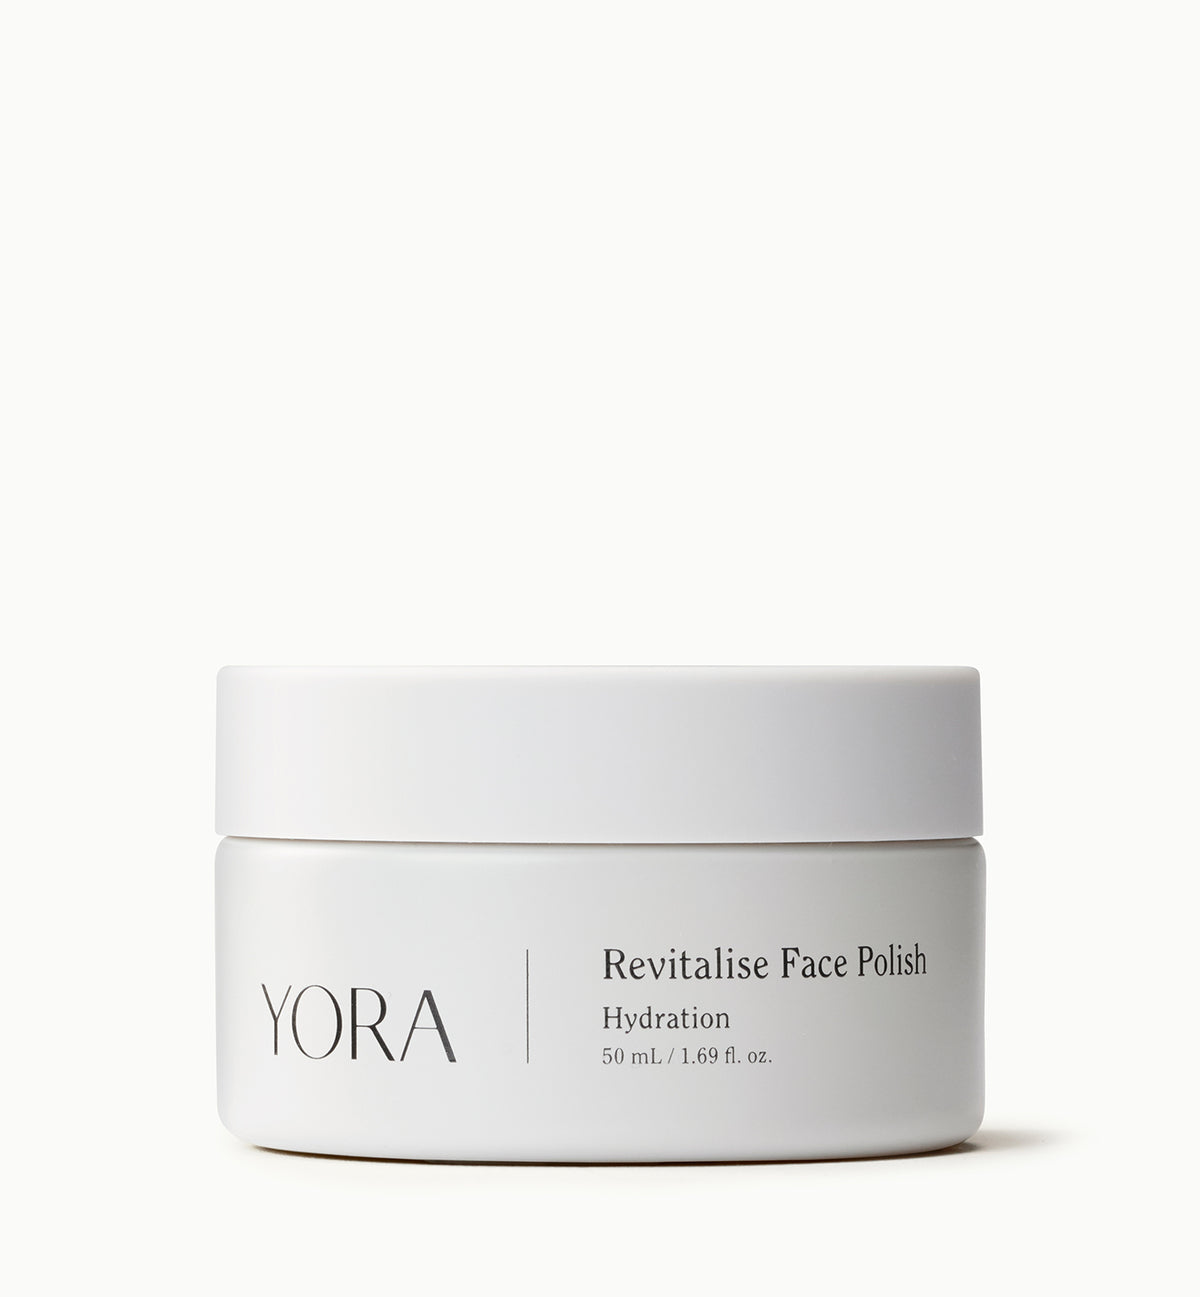 Revitalise Face Polish